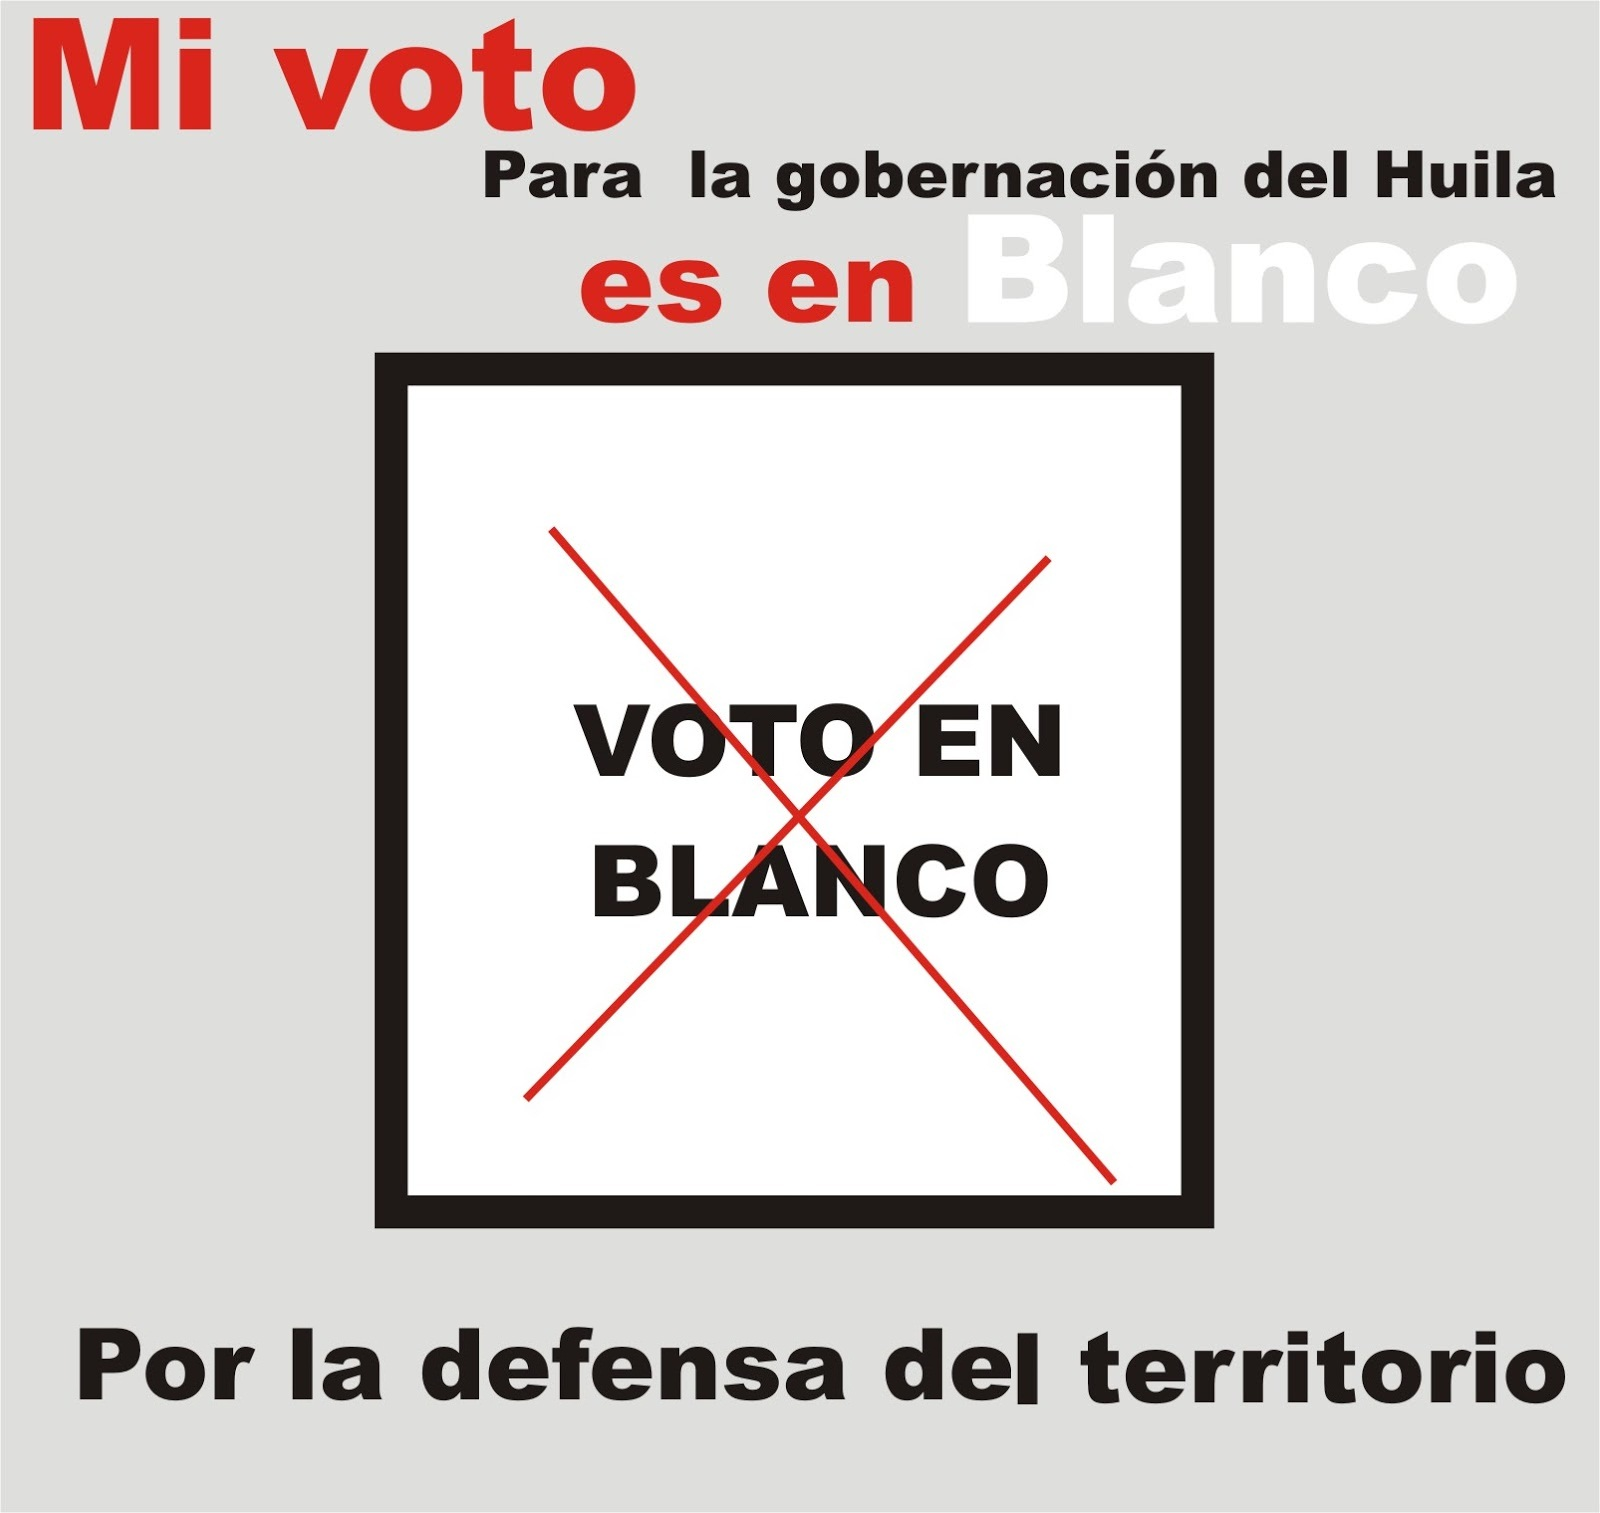 No choice for voters in Huila after Colombia prohibits campaign against El Quimbo dam